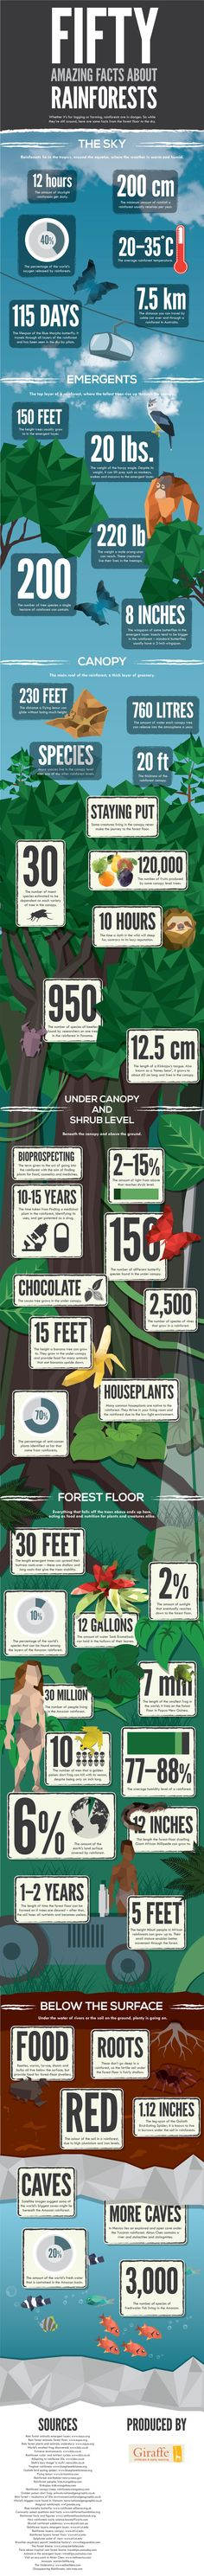 50 Amazing Facts About the Rainforest